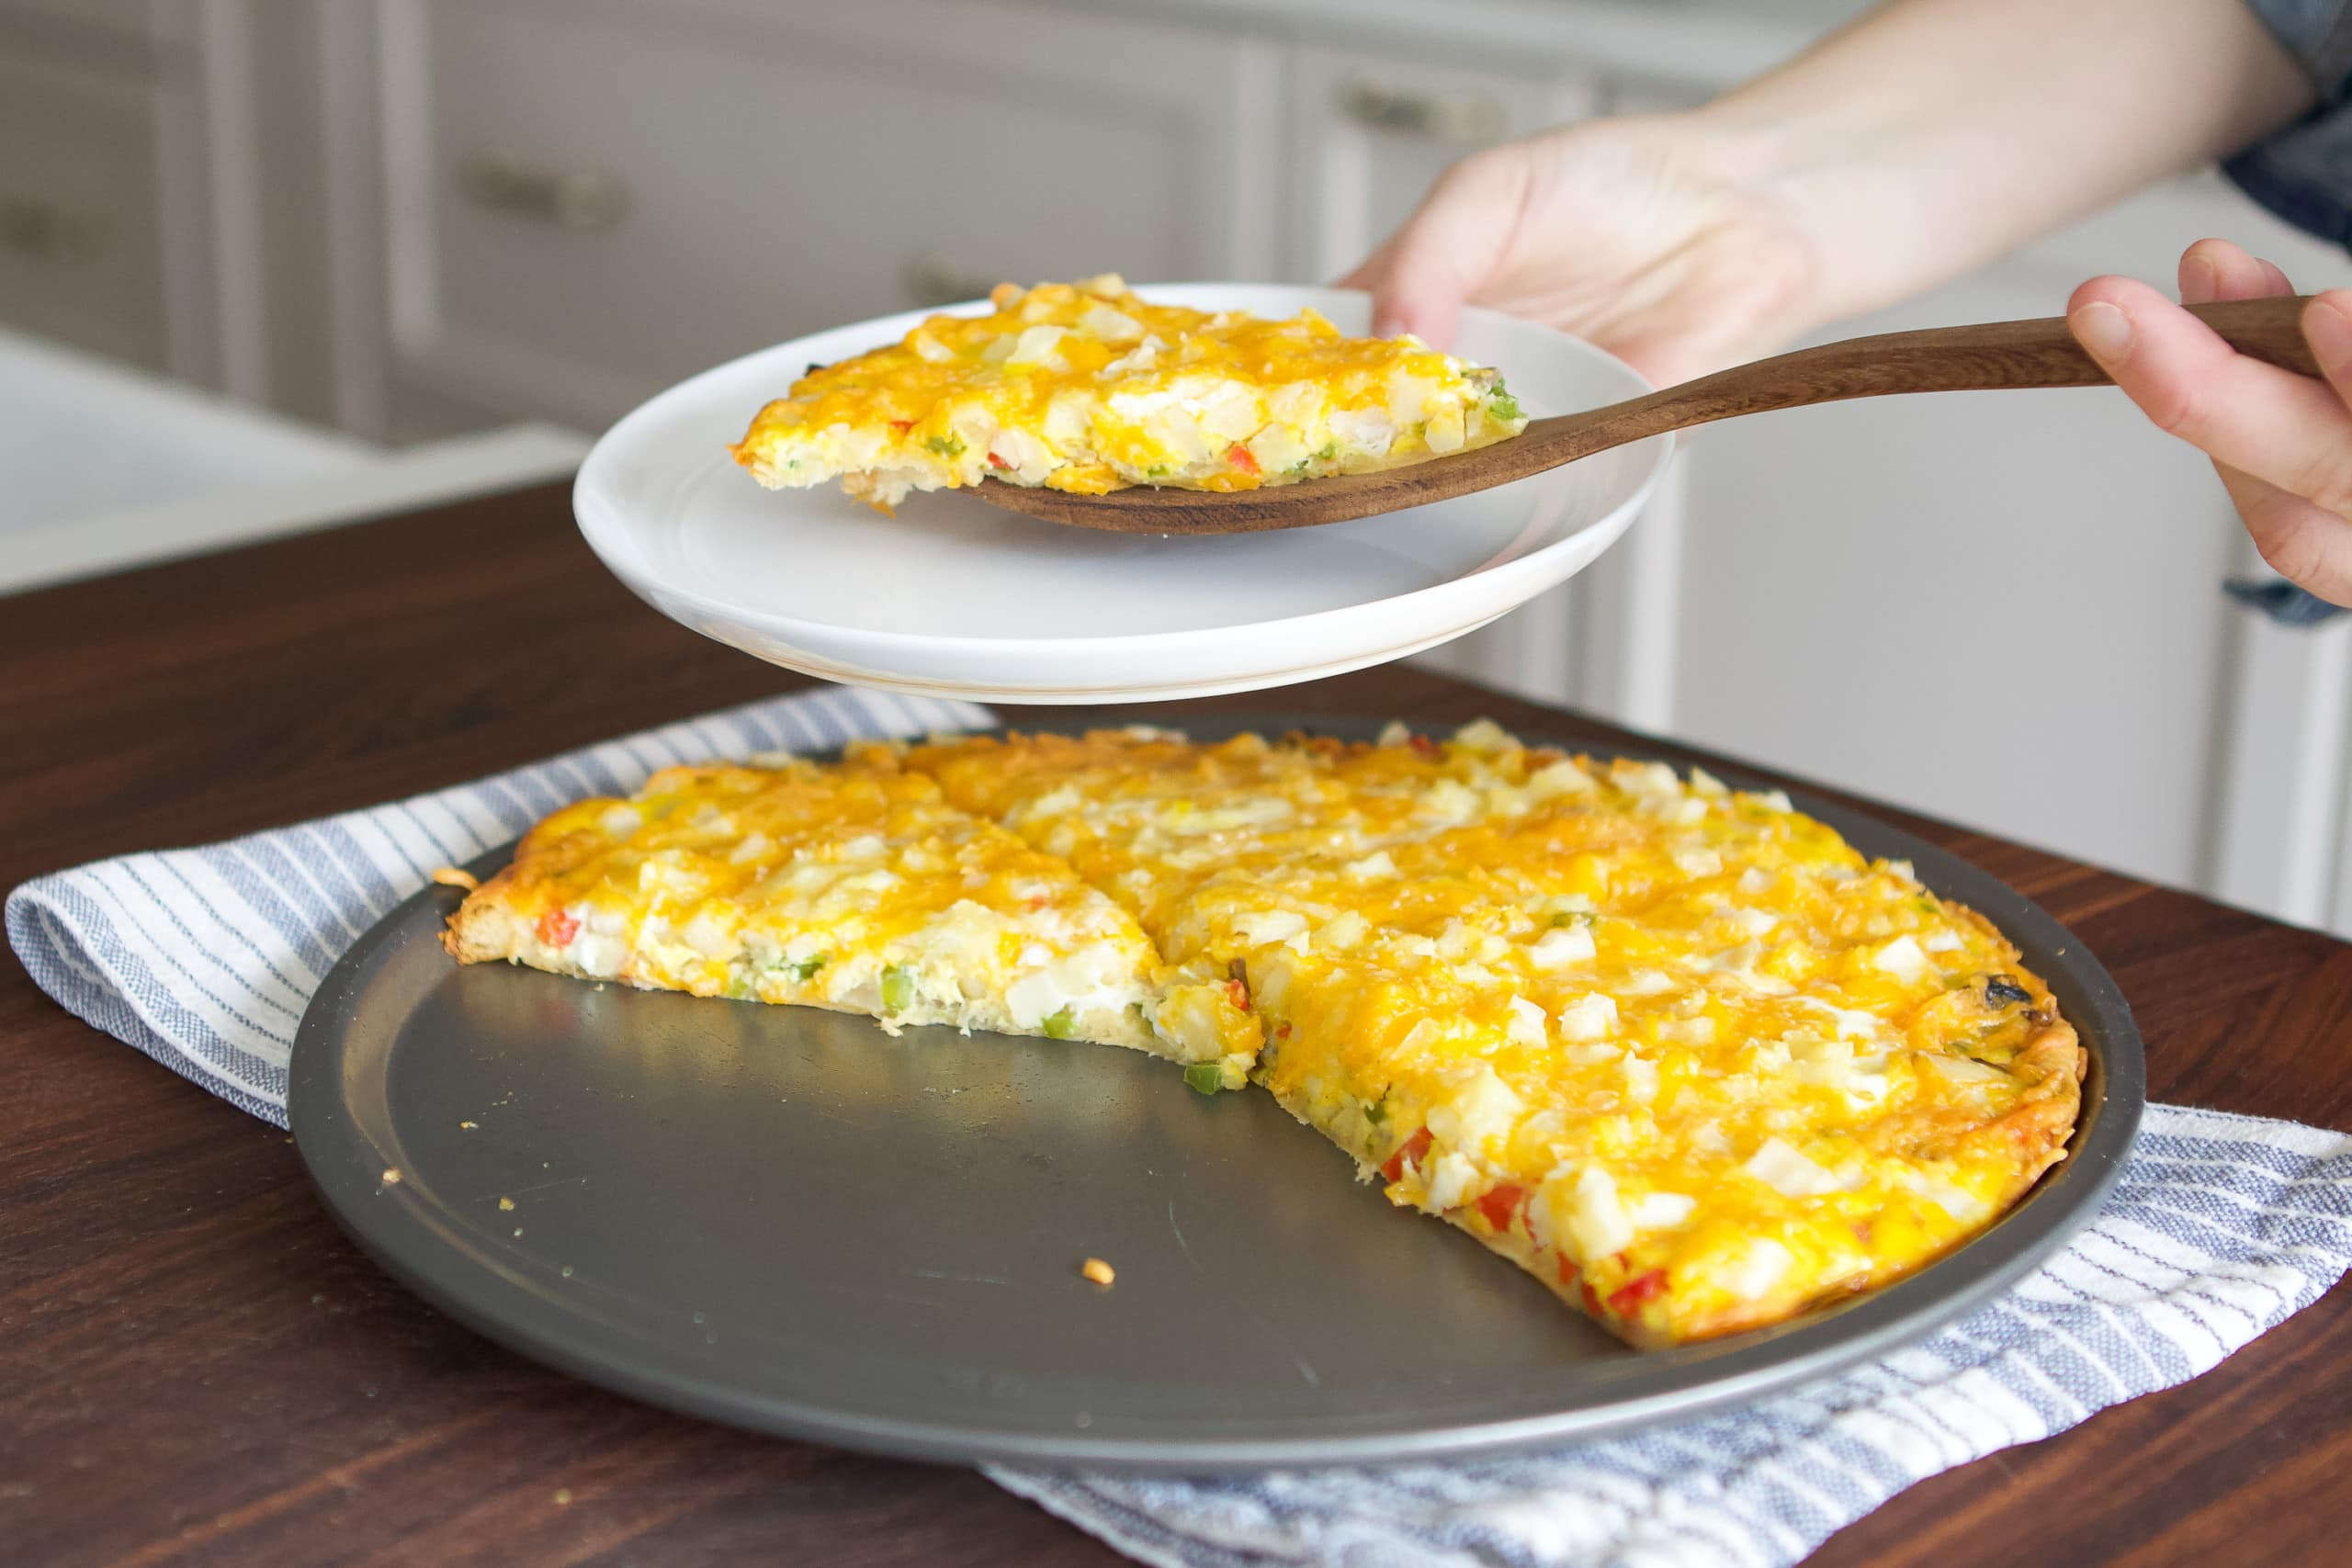 Our family recipe for cheesy breakfast pizza